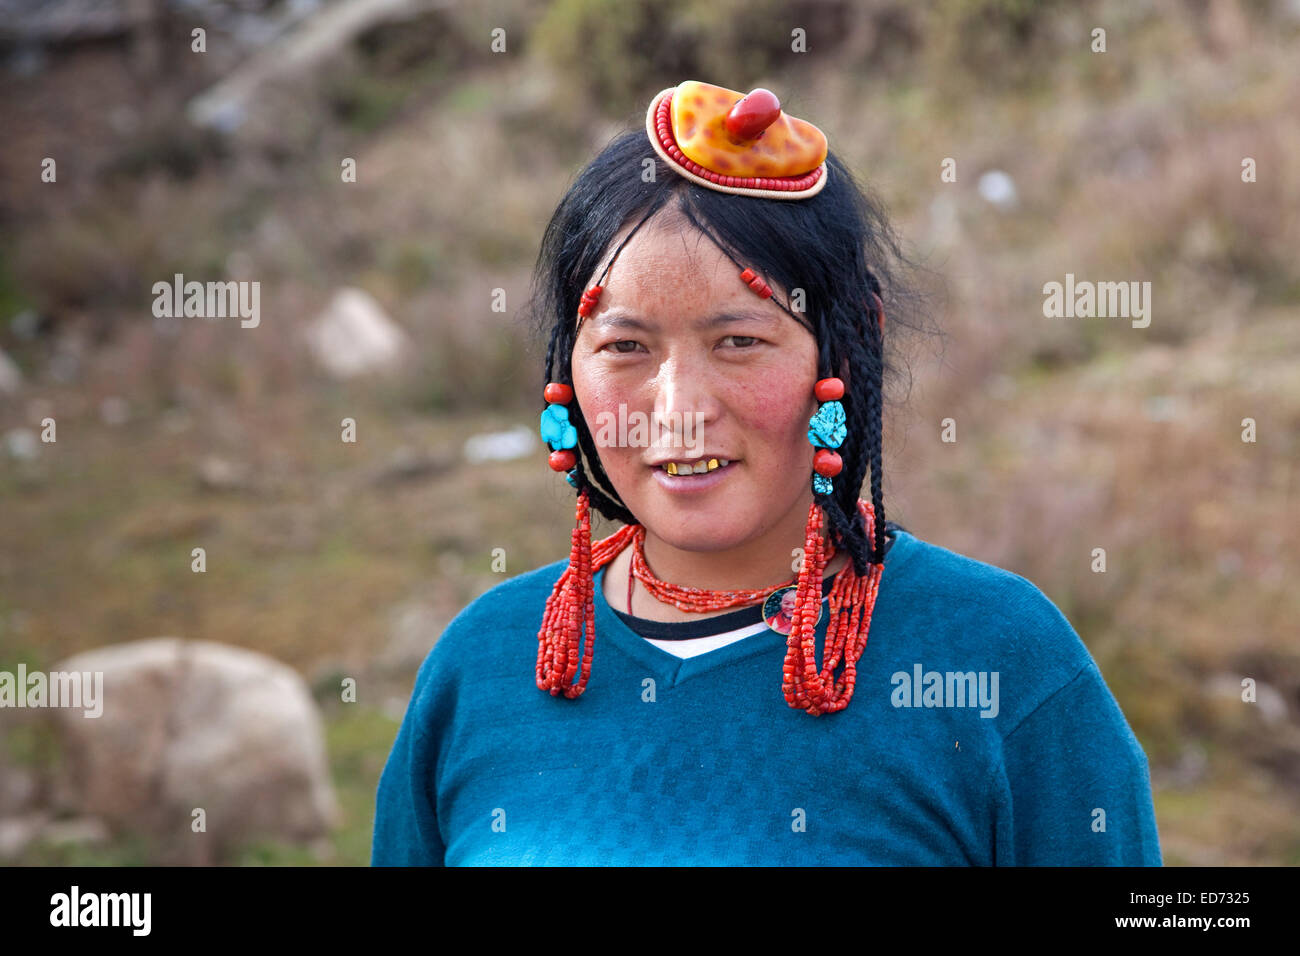 Portrait of Tibetan Khampa woman wearing jewelry, traditional amber and red coral hair piece at Zhuqing, Sichuan - Stock Image